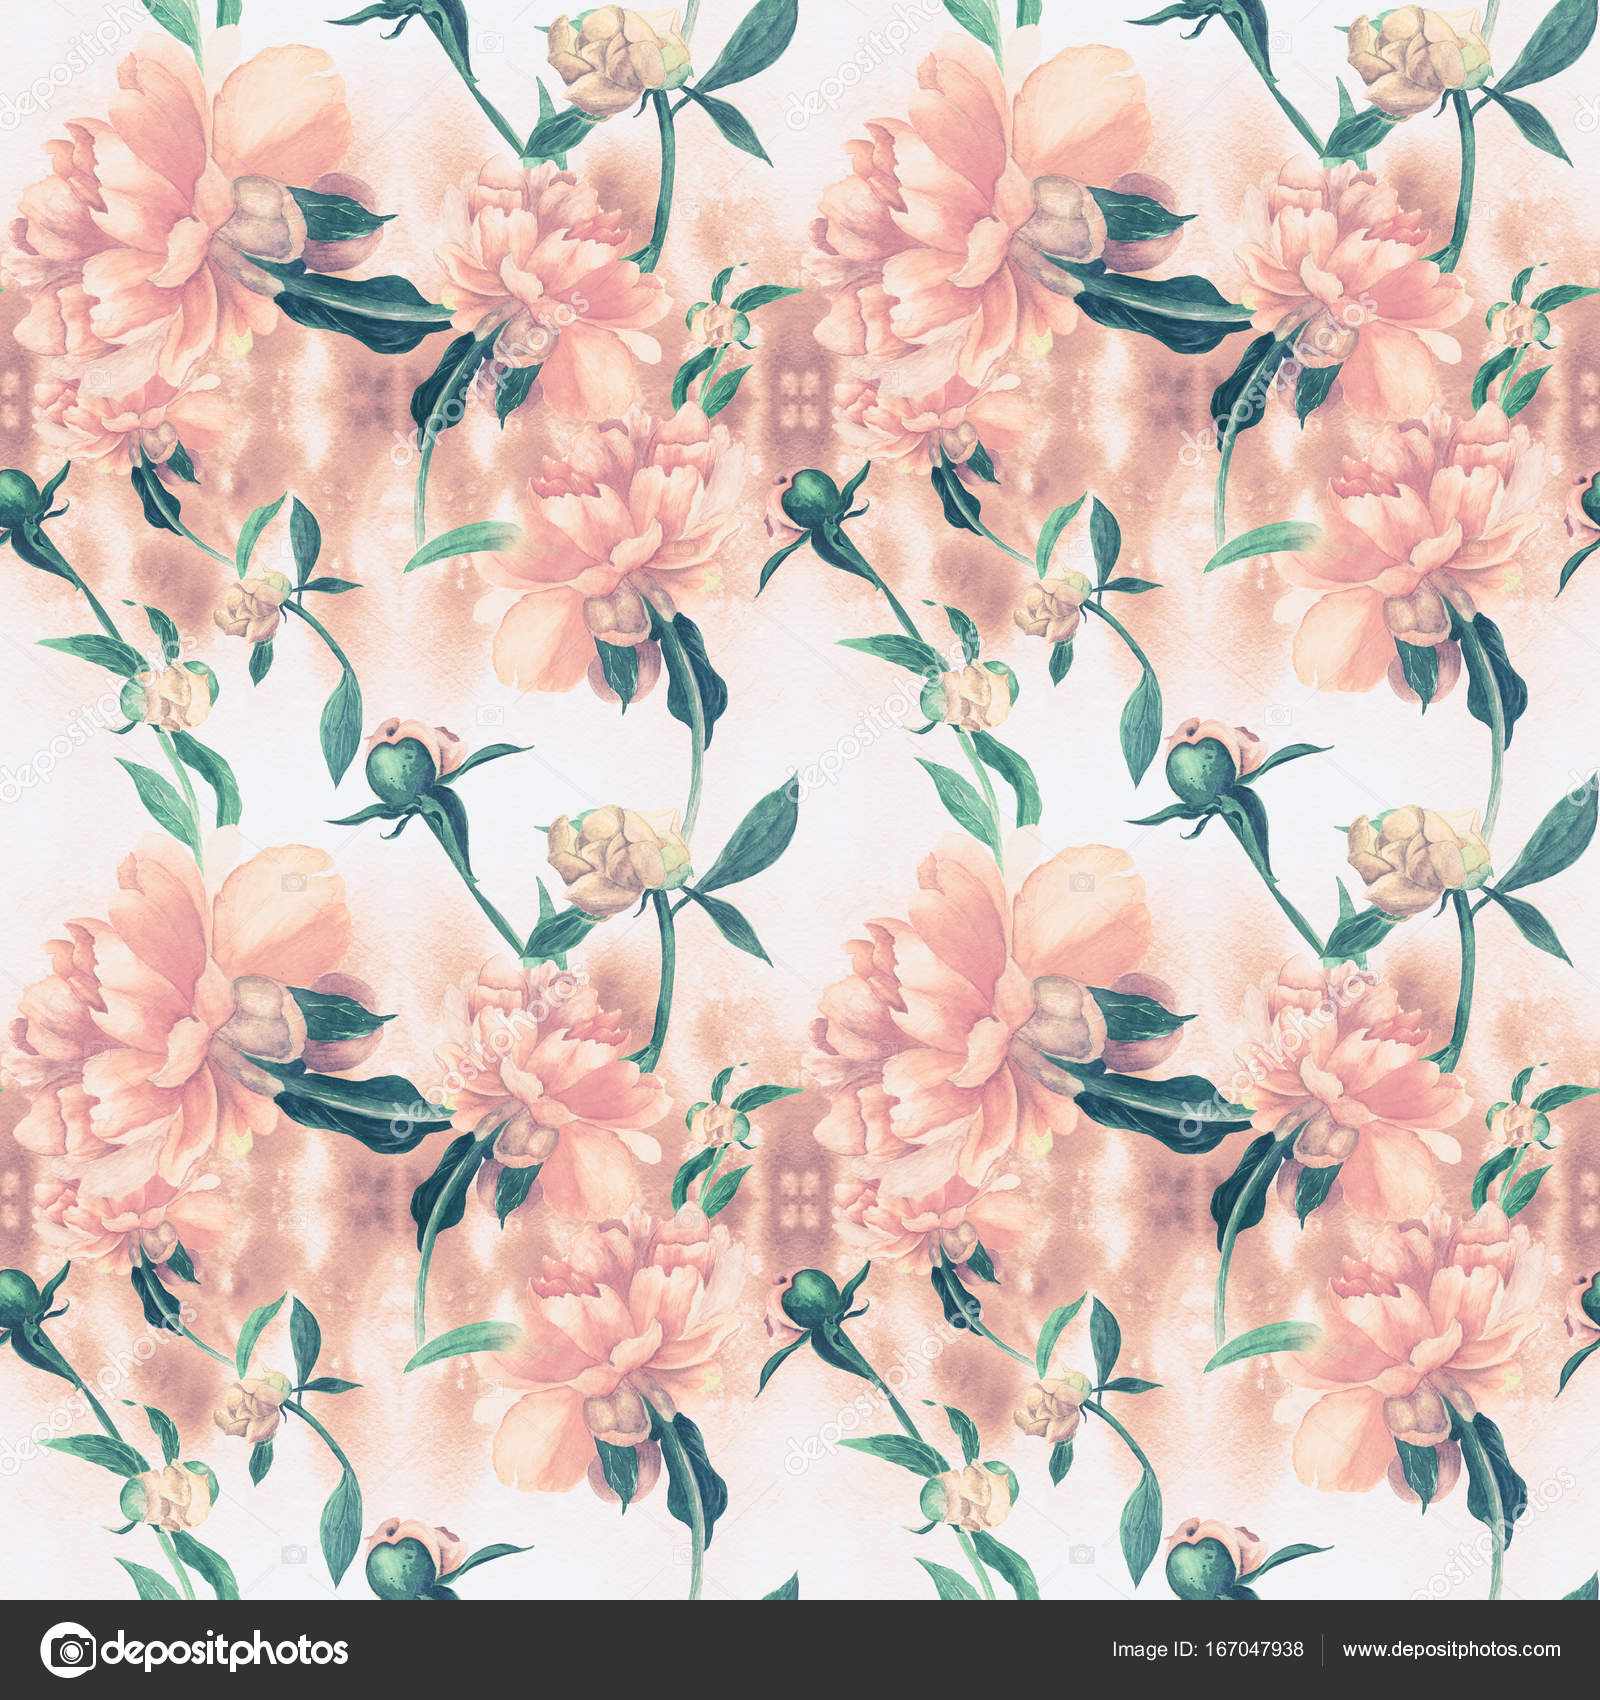 Flowers And Buds Of A Pink Peony Decorative Composition On Watercolor Background Photo By Gvinevera88